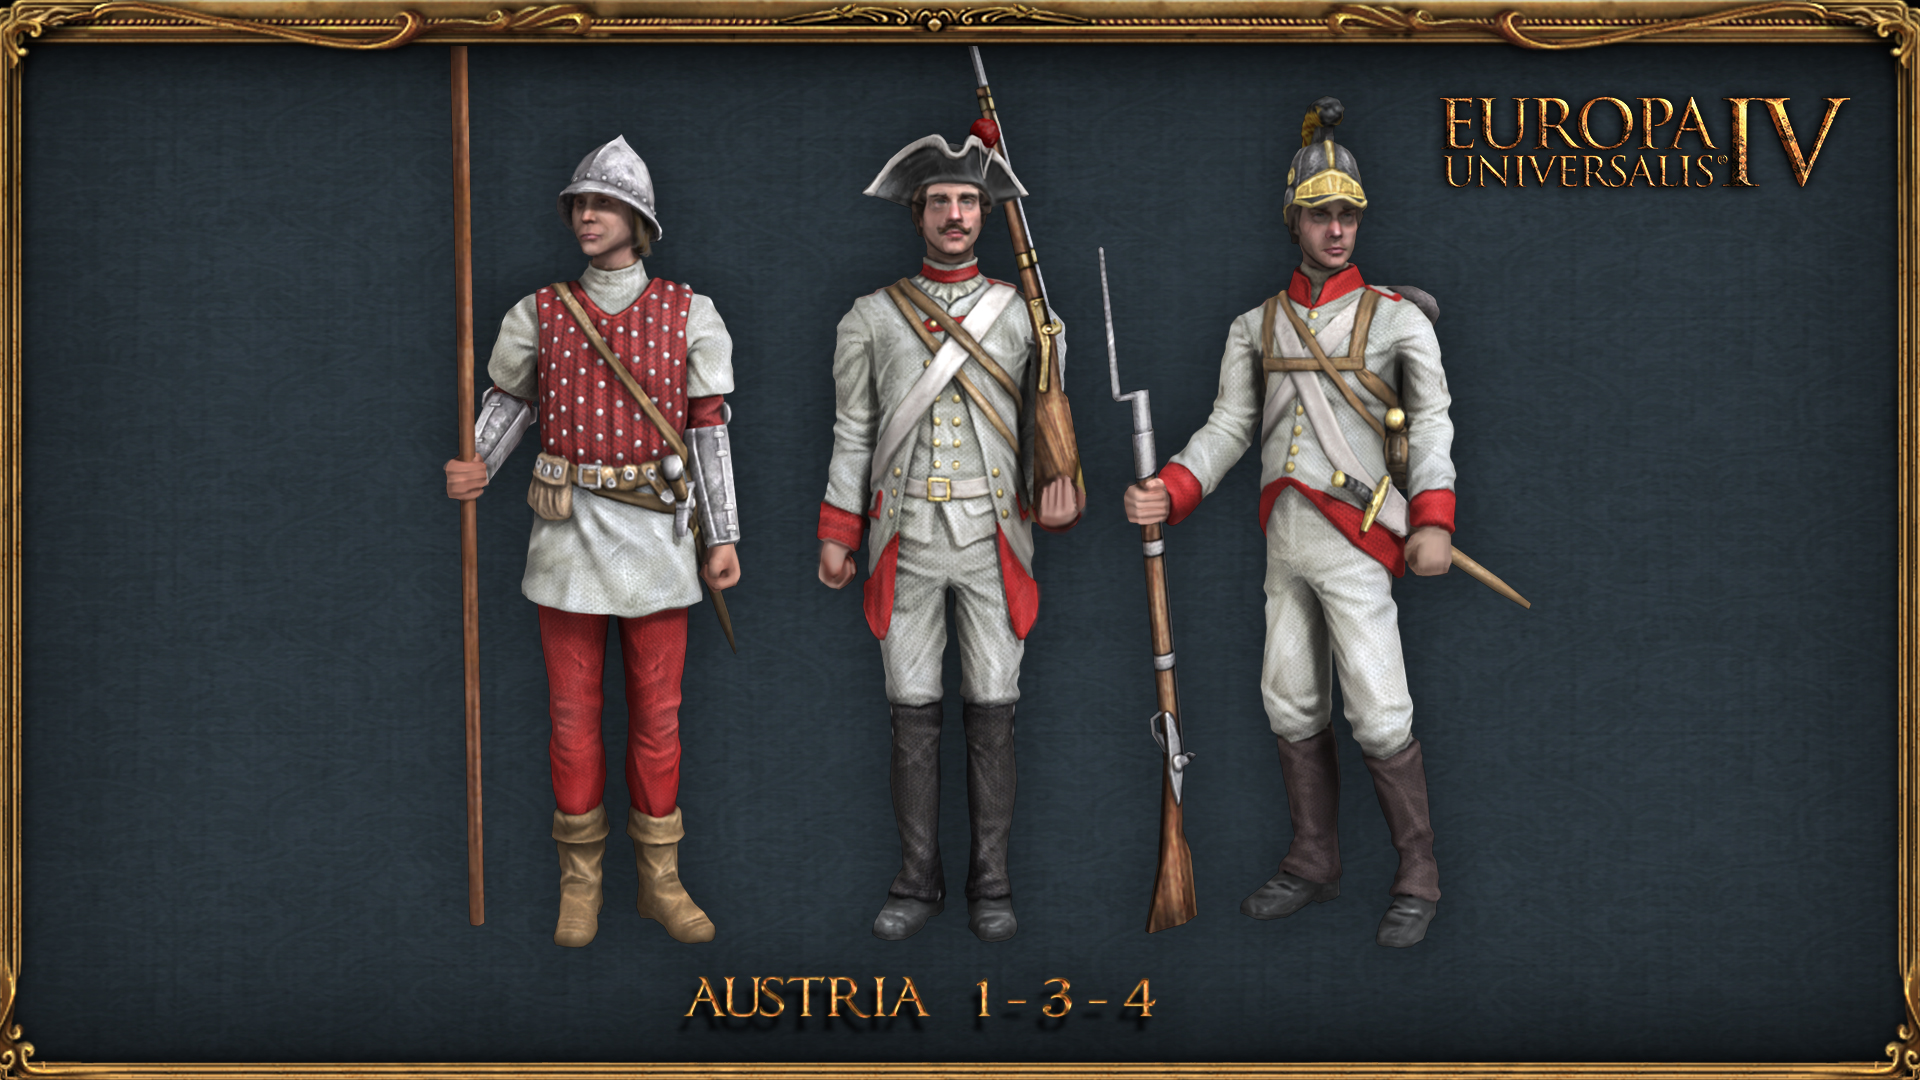 Europa Universalis IV: Trade Nations Unit Pack Download